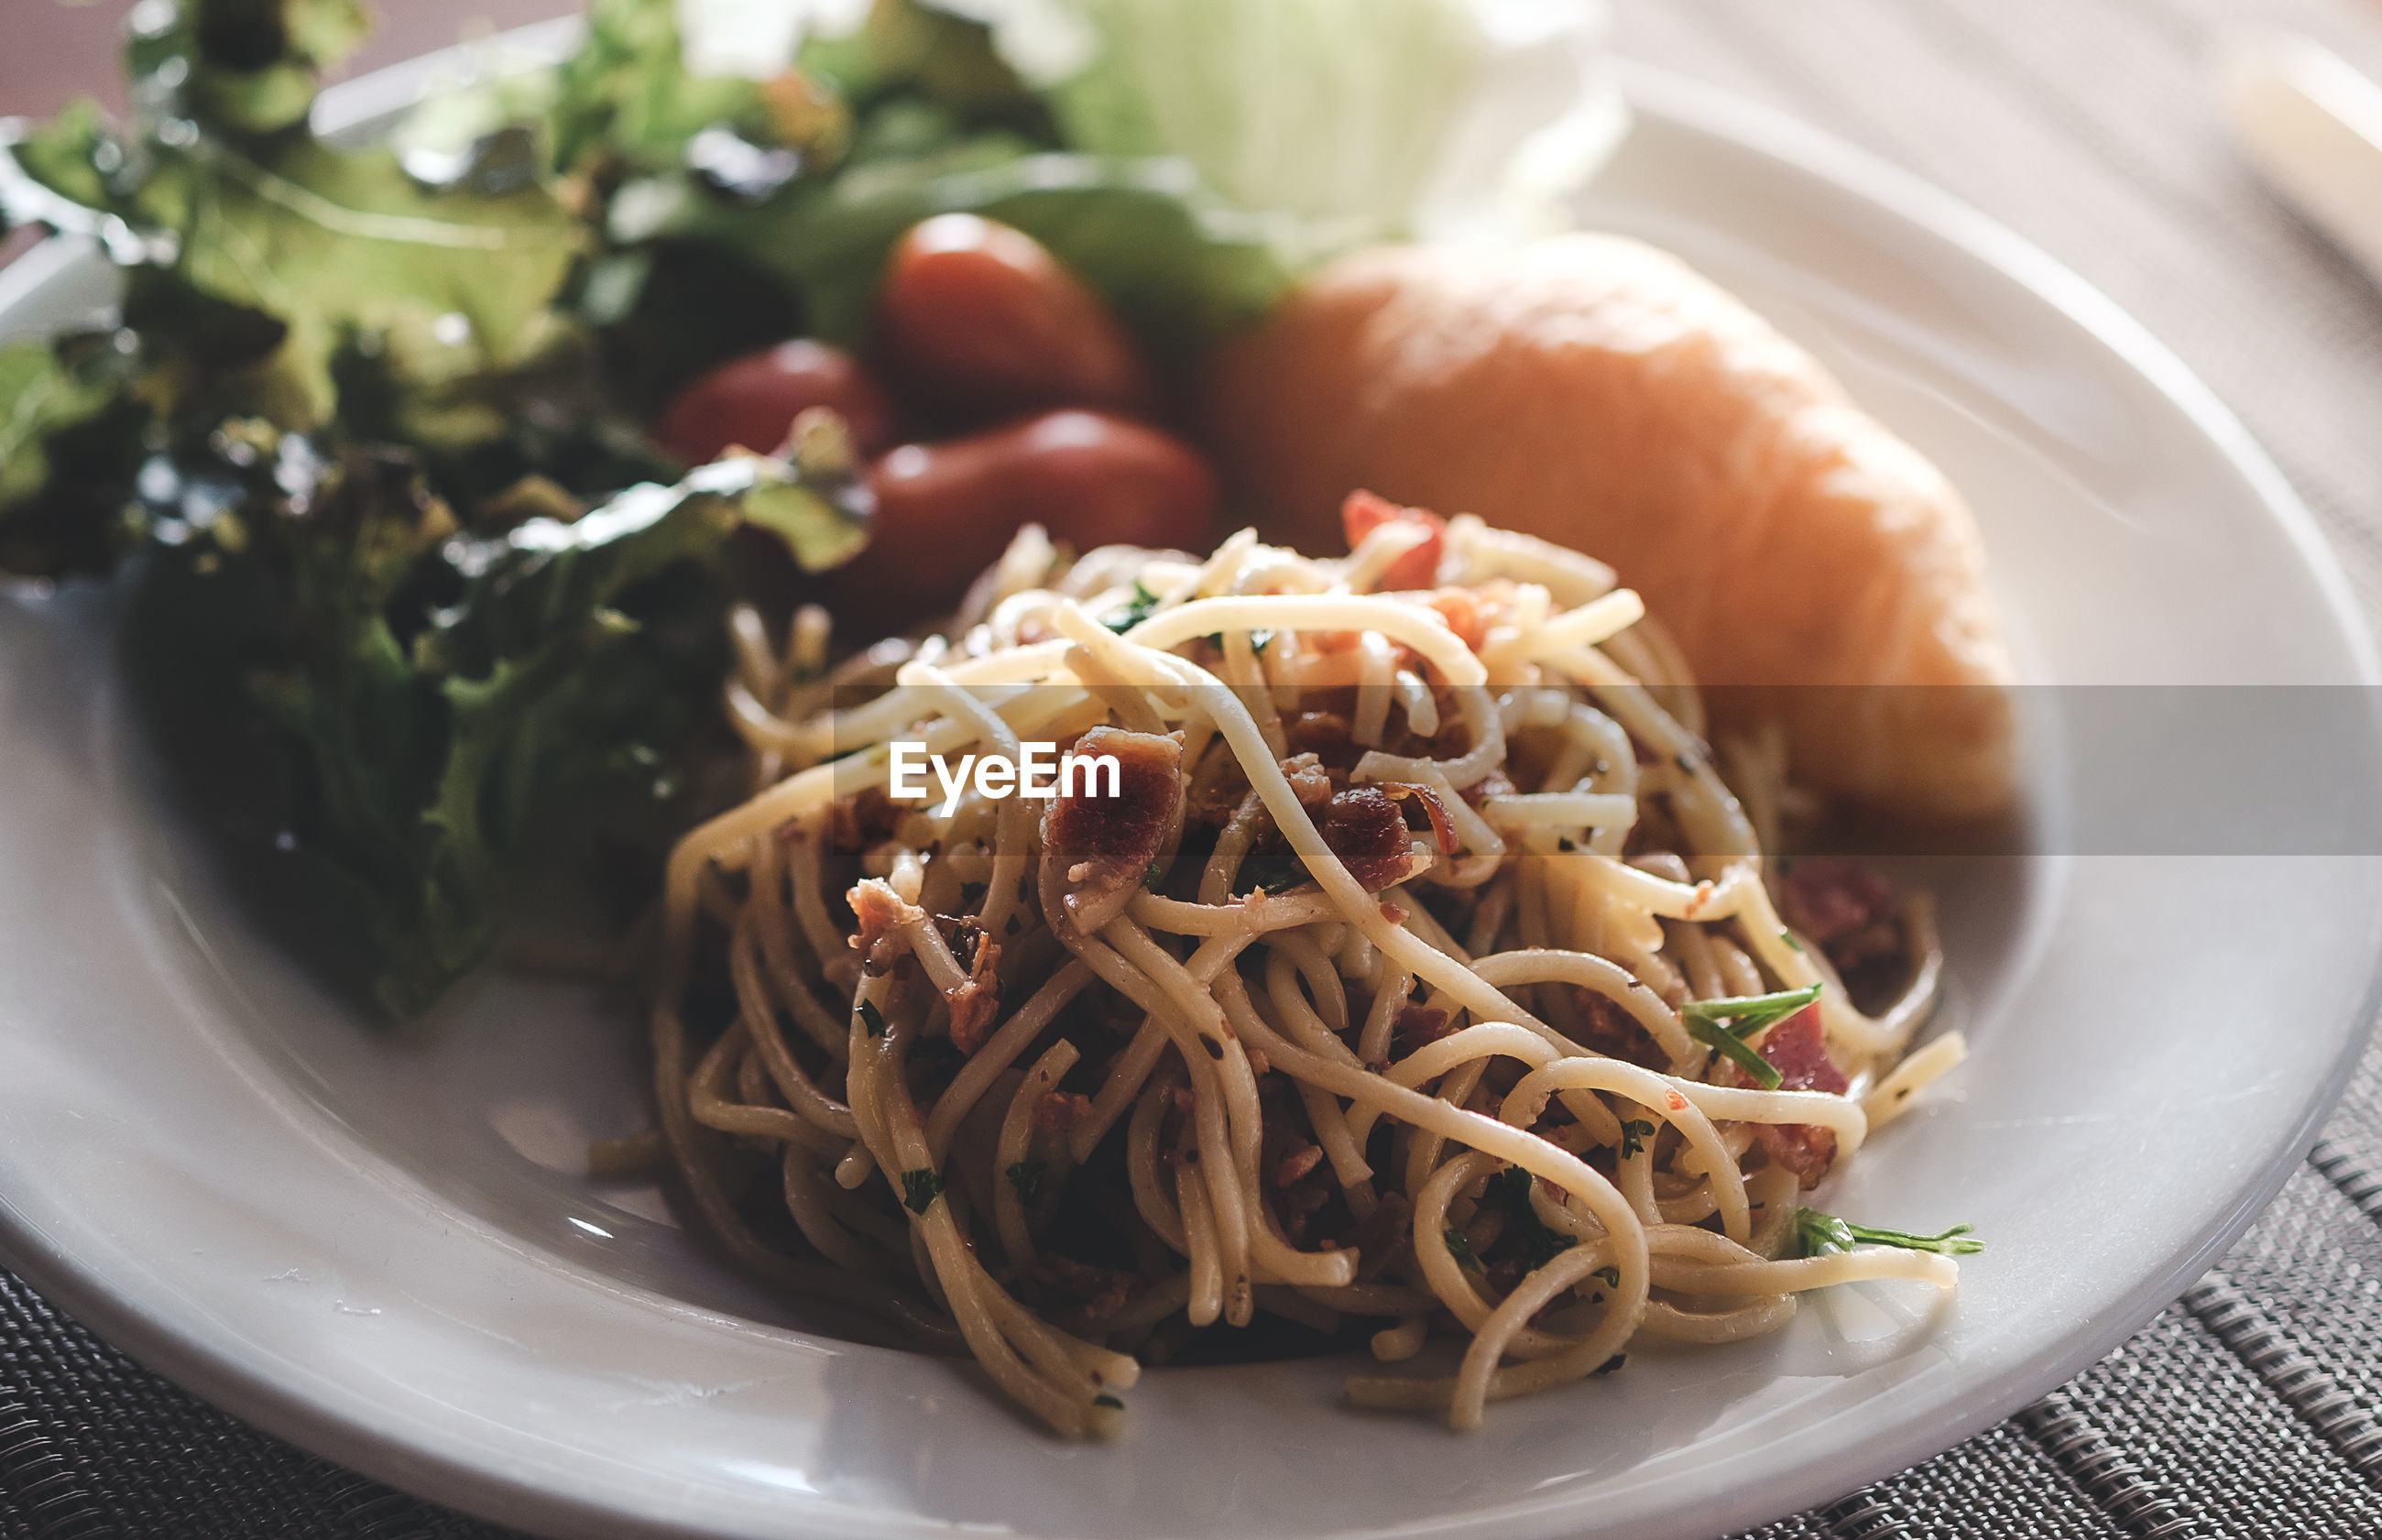 Spicy stir fry noodles, tomato,vegetables and becon